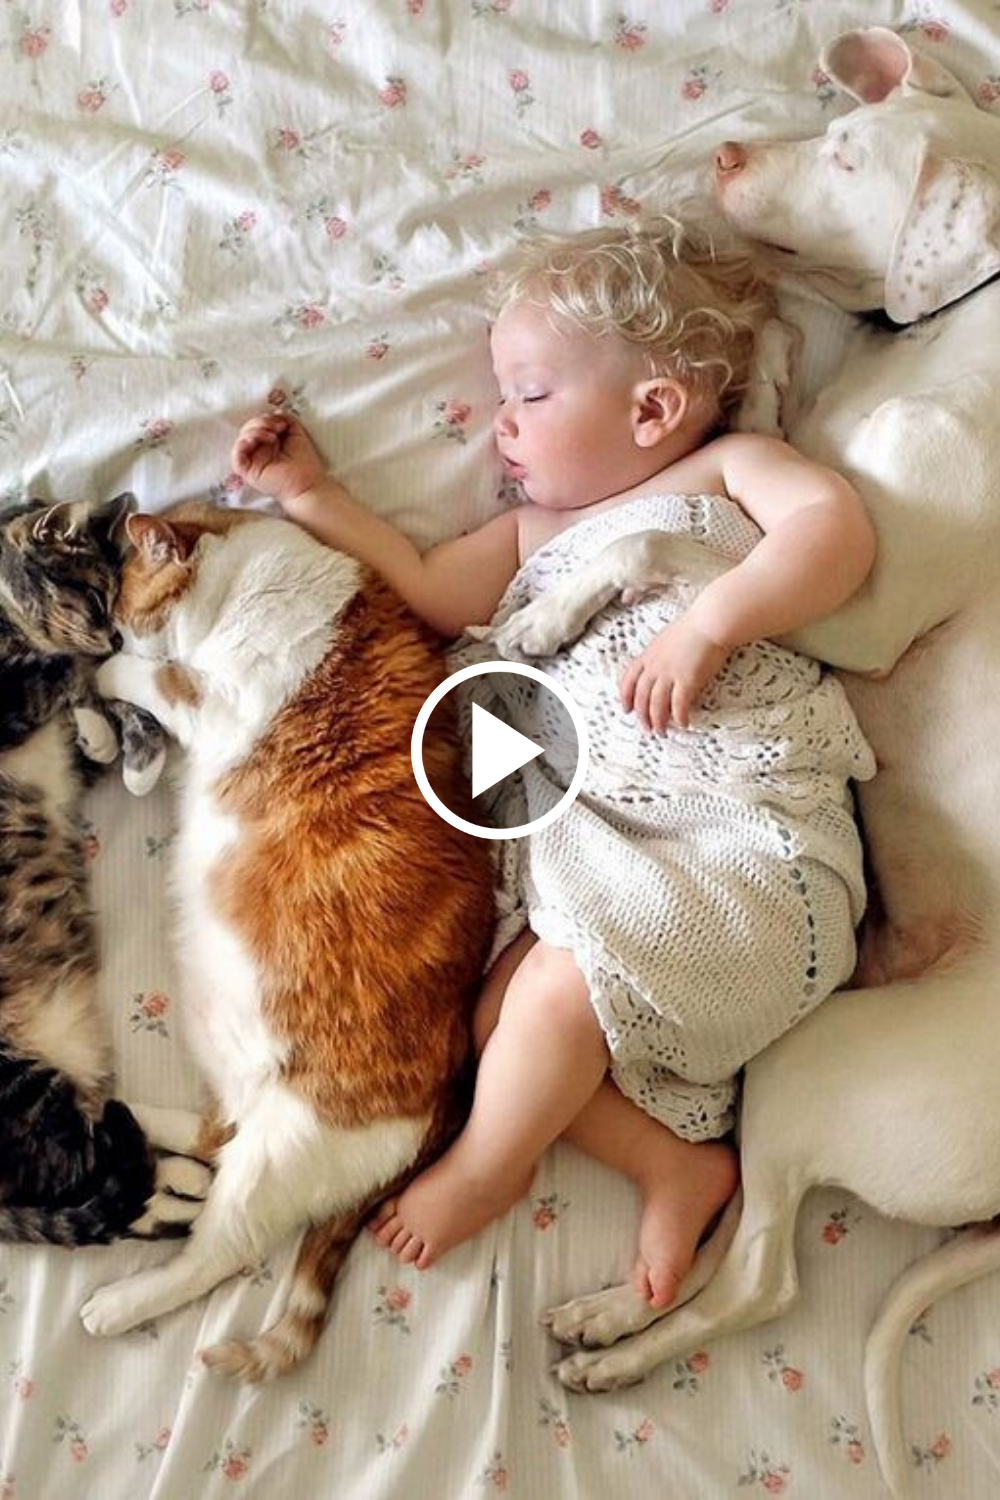 Adorable Babies Playing With Dogs And Cats In 2020 Baby Play Dog Cat Funny Babies